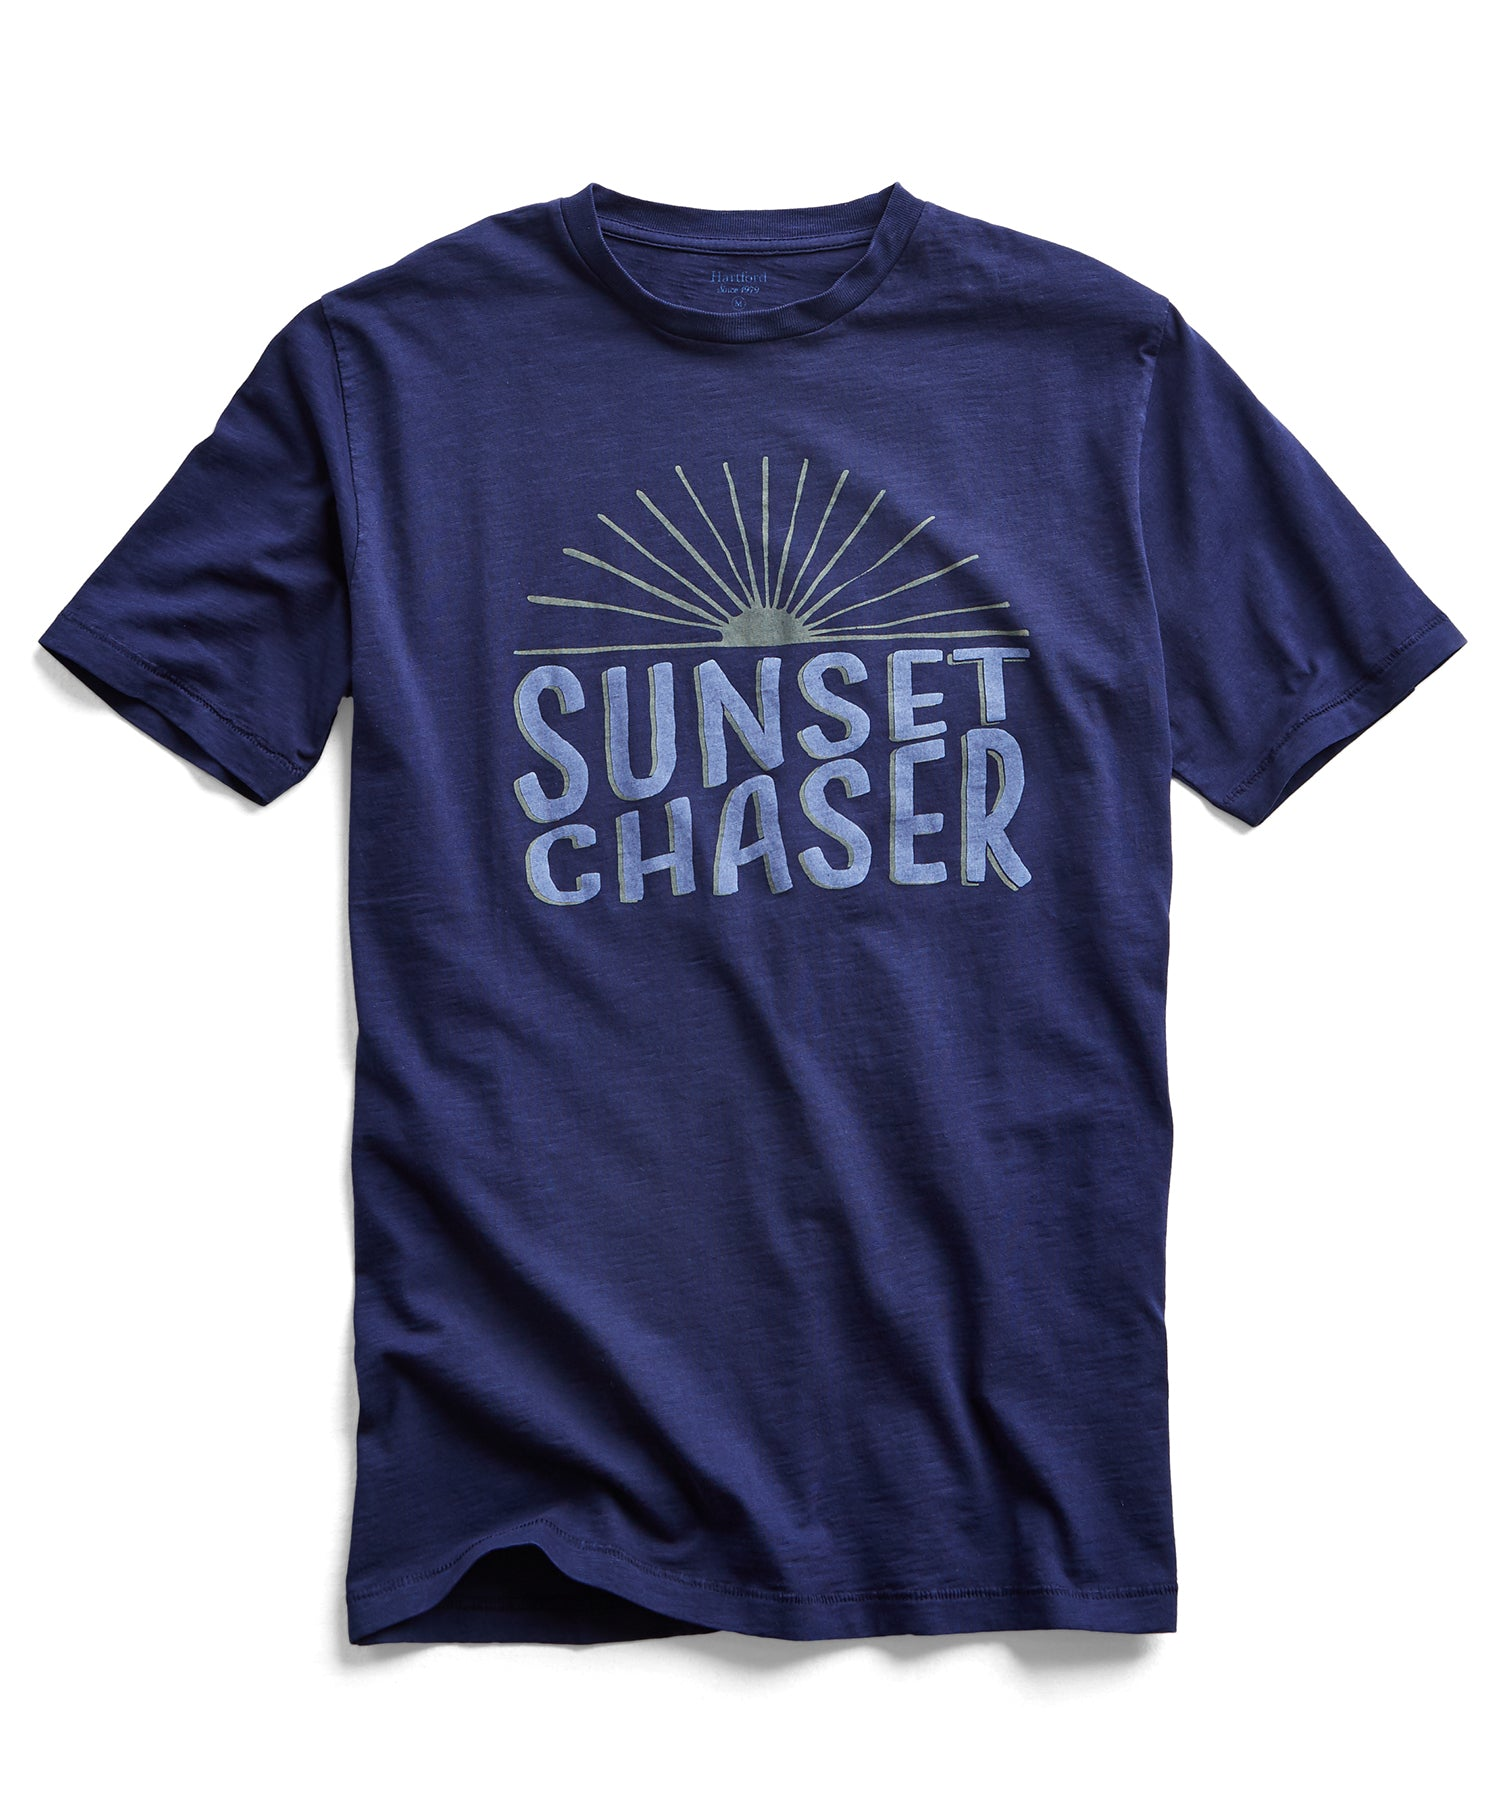 Hartford Sunset Chaser Tee in Blue